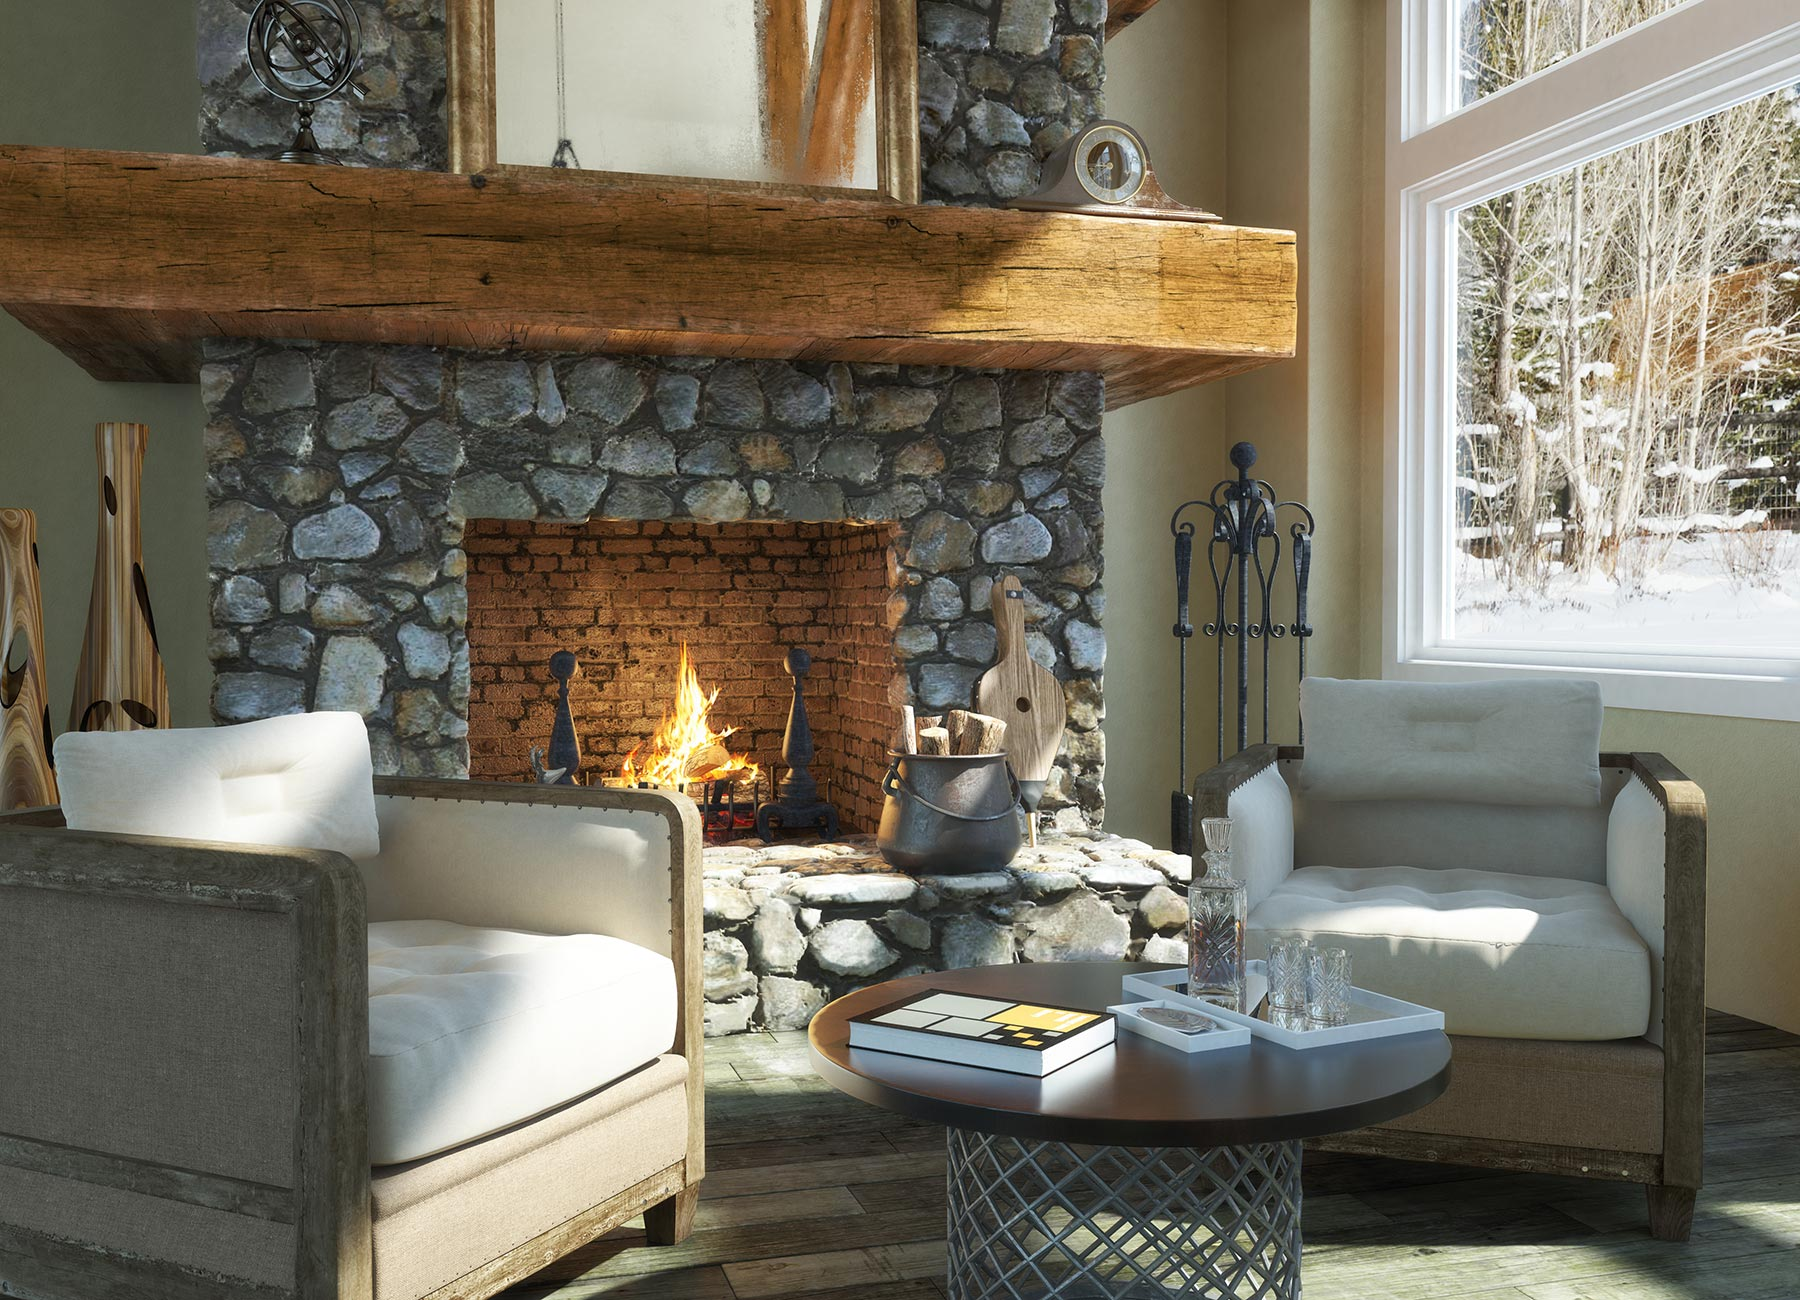 Roaring log fire in stone fireplace